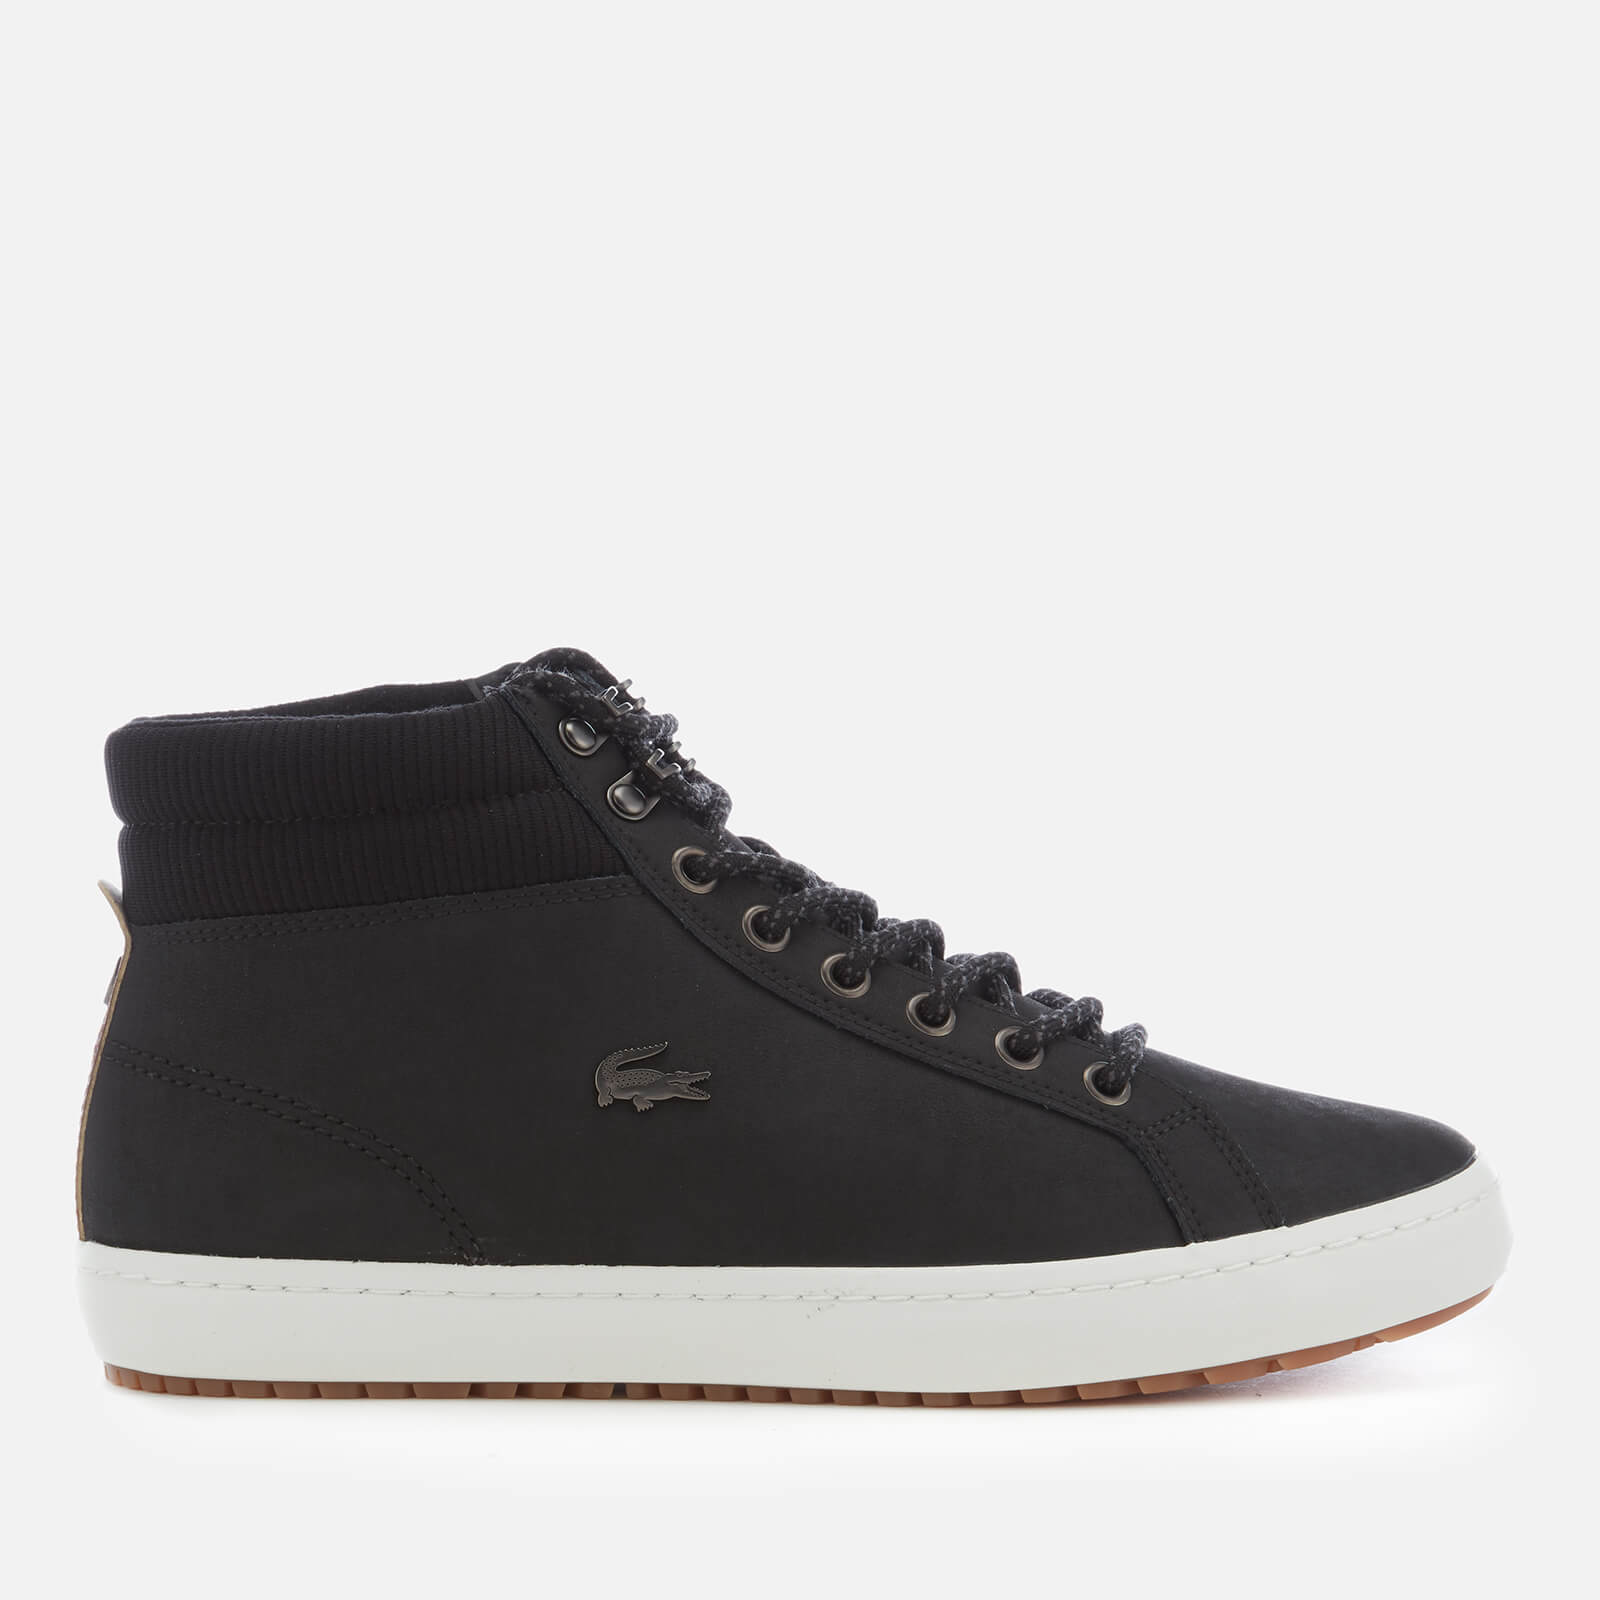 269274c2b ... Lacoste Men s Straightset Insulate C 318 1 Water Resistant Leather  Boots - Black Black